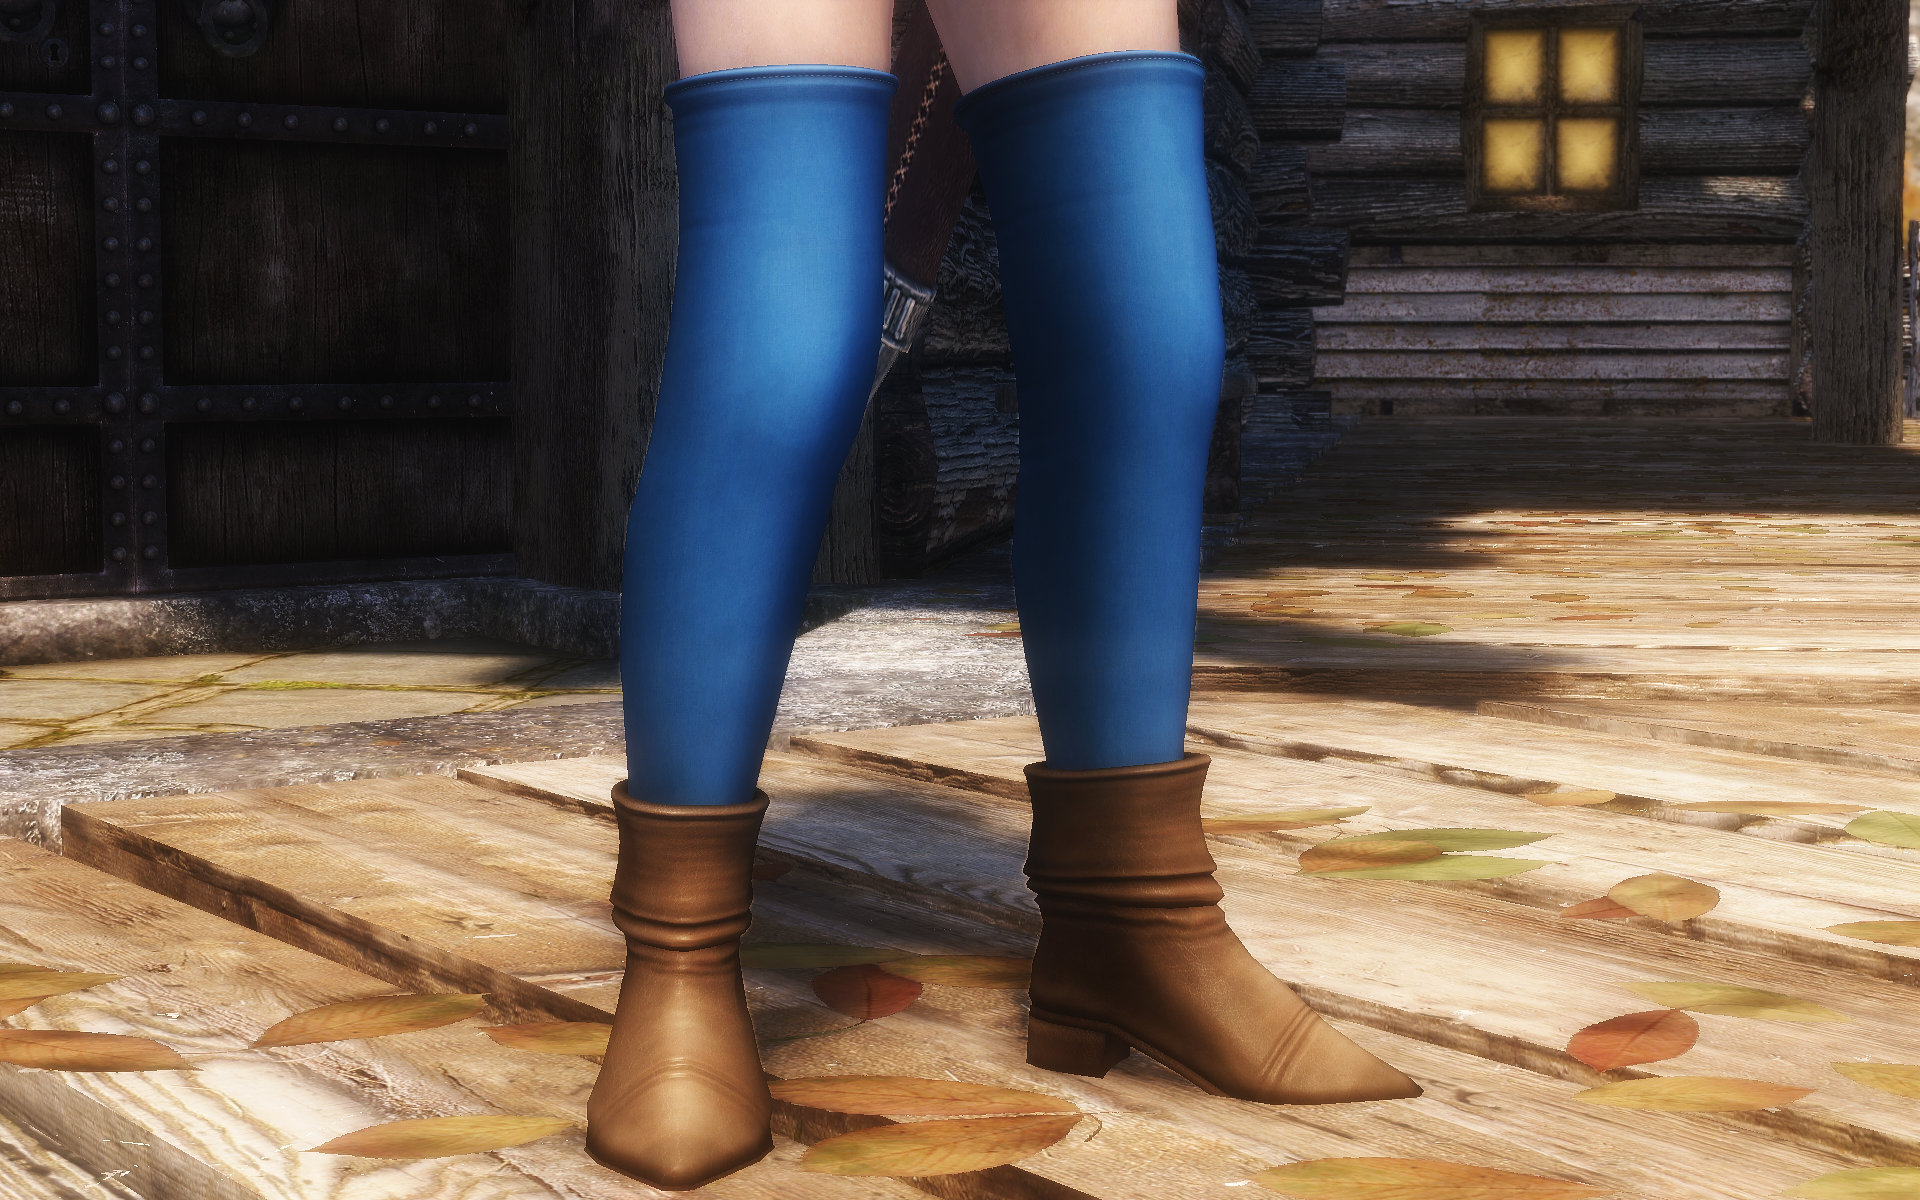 Dragon Quest Blue Warrior Armor (DQ Anime Daisy Armor)